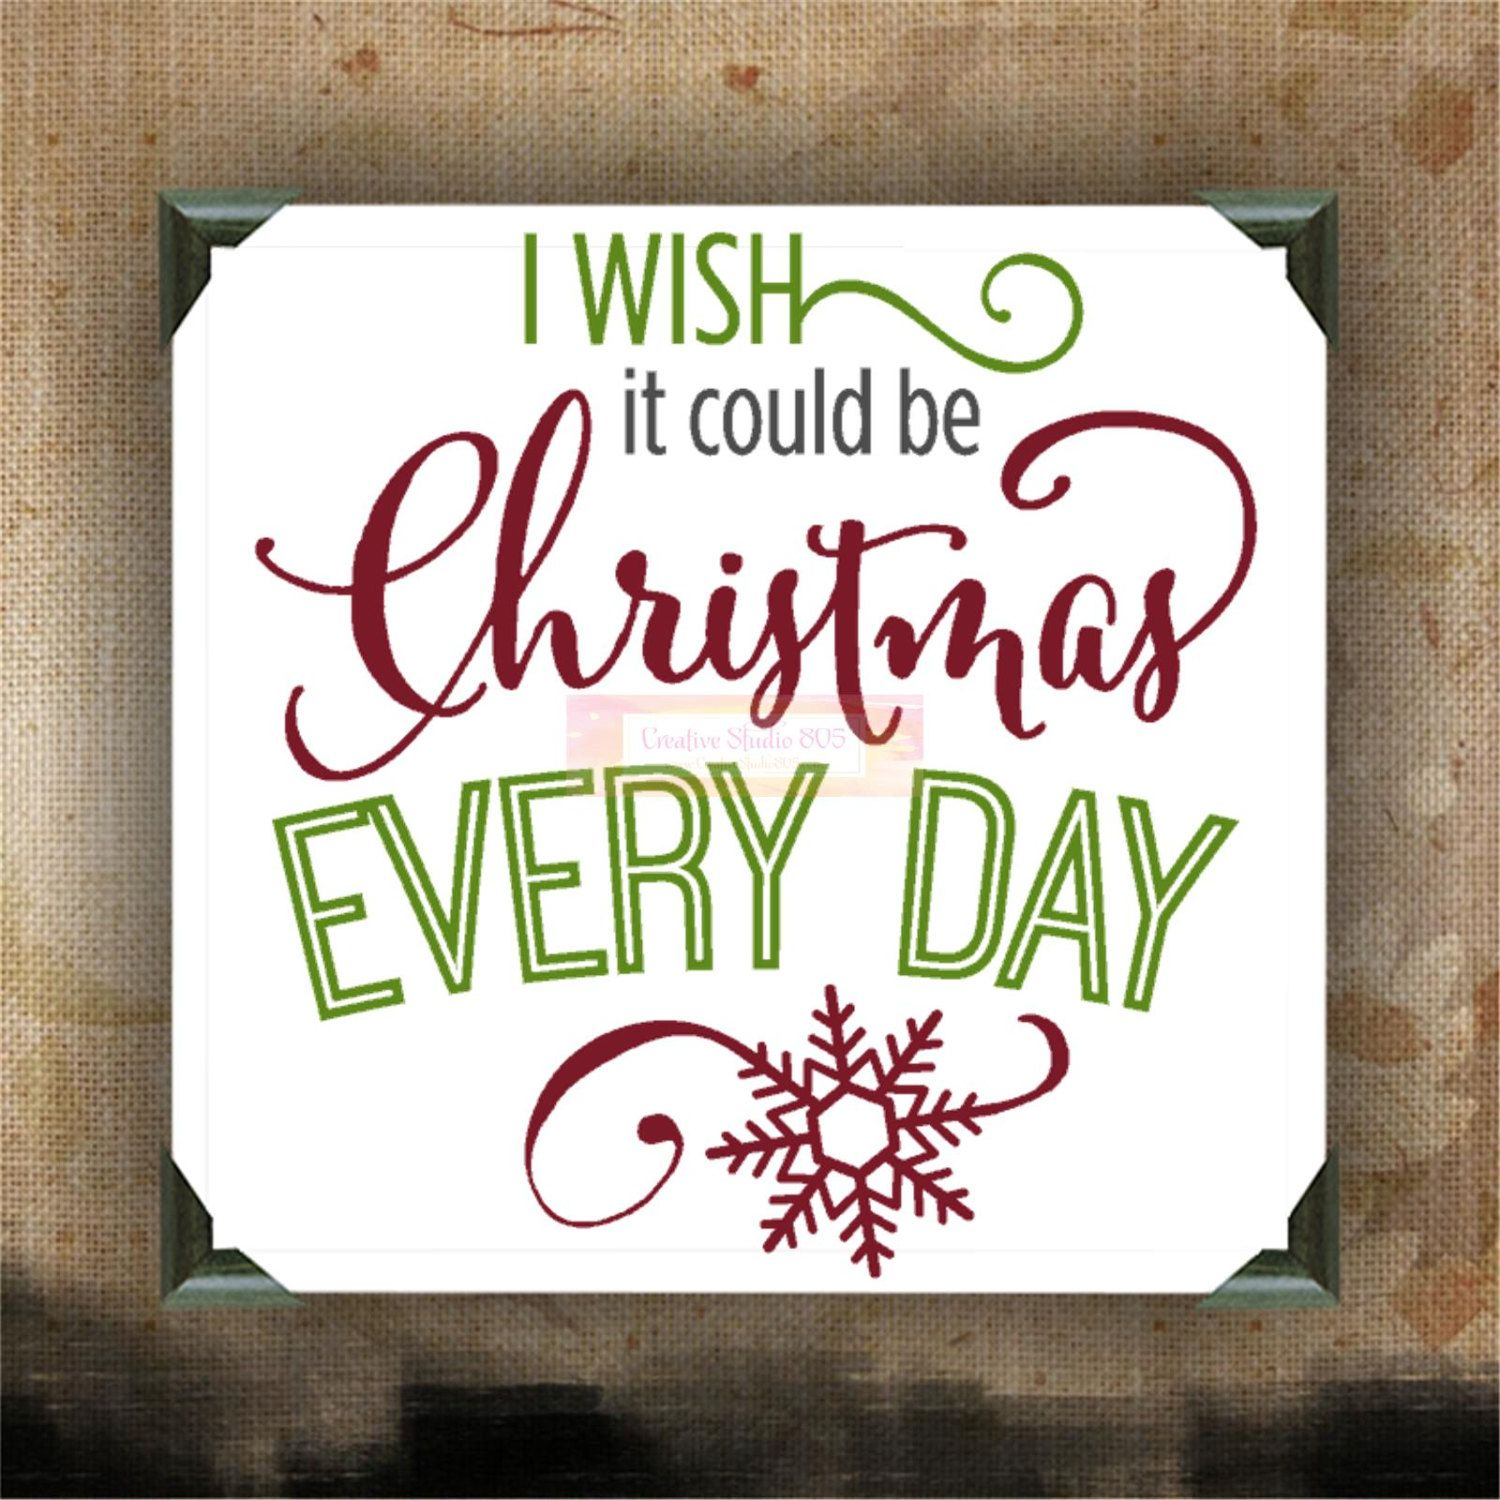 I Wish It Could Be Christmas Everyday Painted Canvases Wall Decor Wall Hanging Christmas Qu Christmas Wall Decor Canvas Wall Hanging Hanging Wall Decor